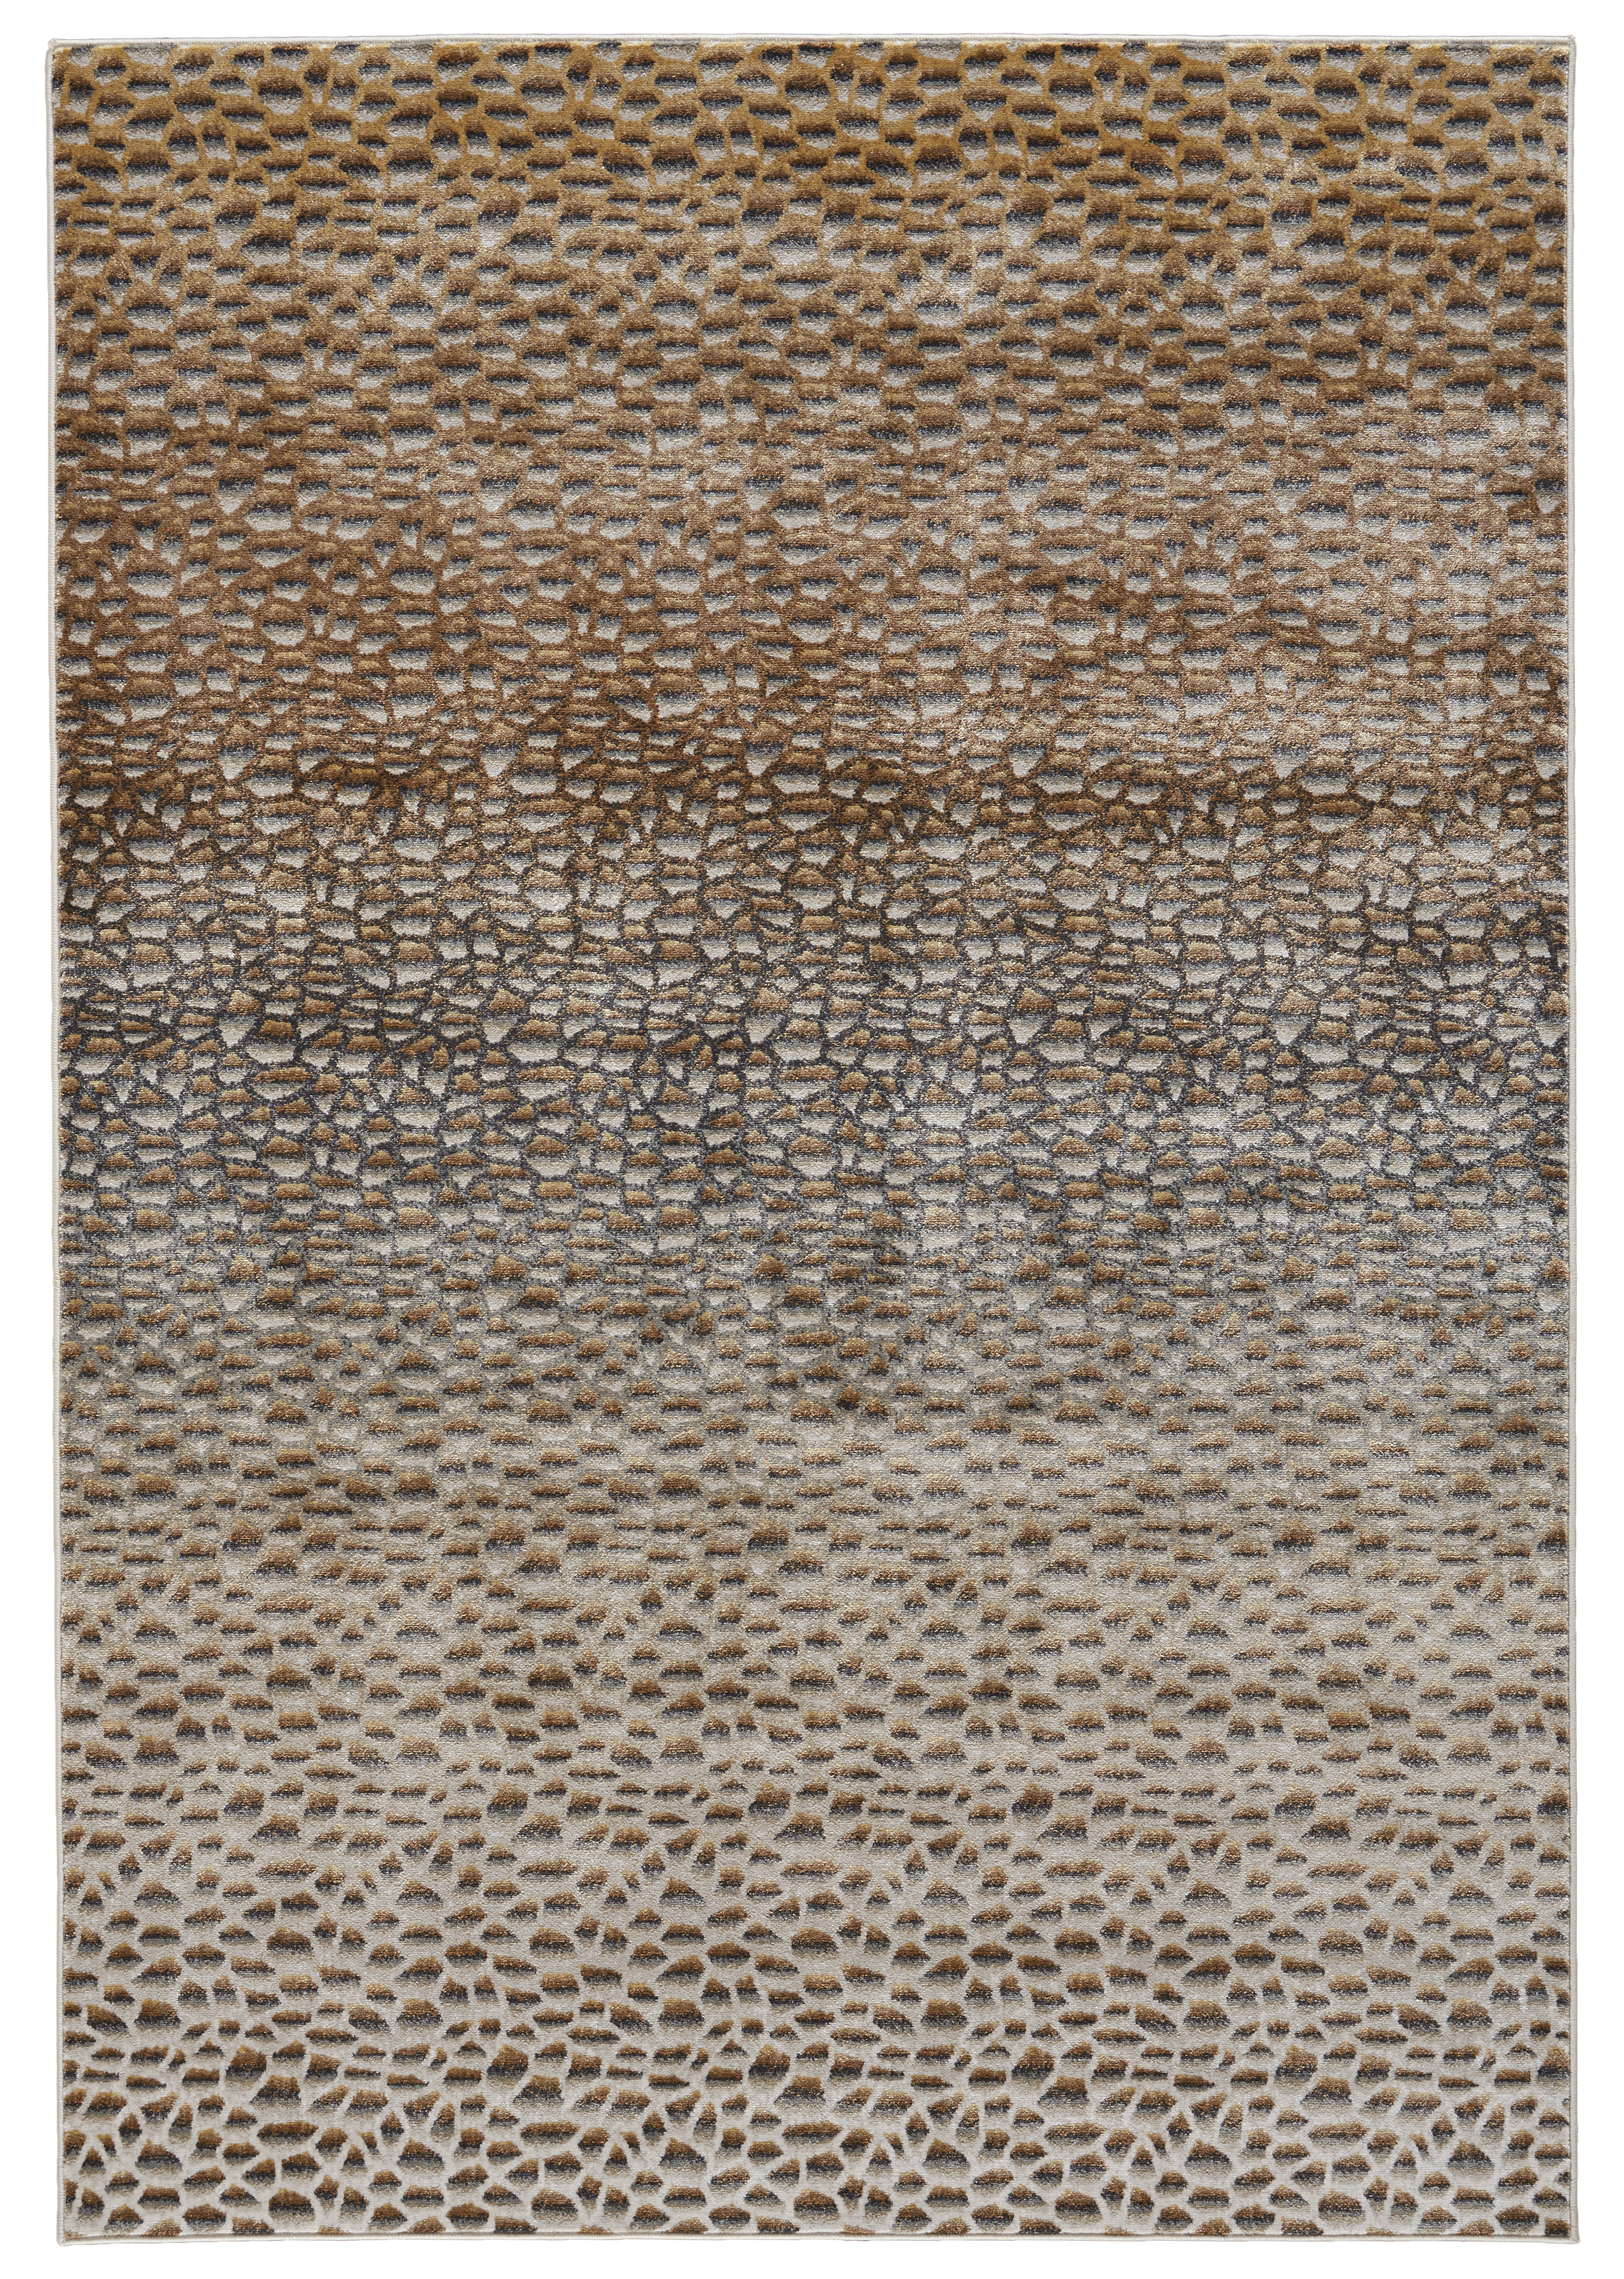 Cannes area rug in metallic Dark Gold from Feizy